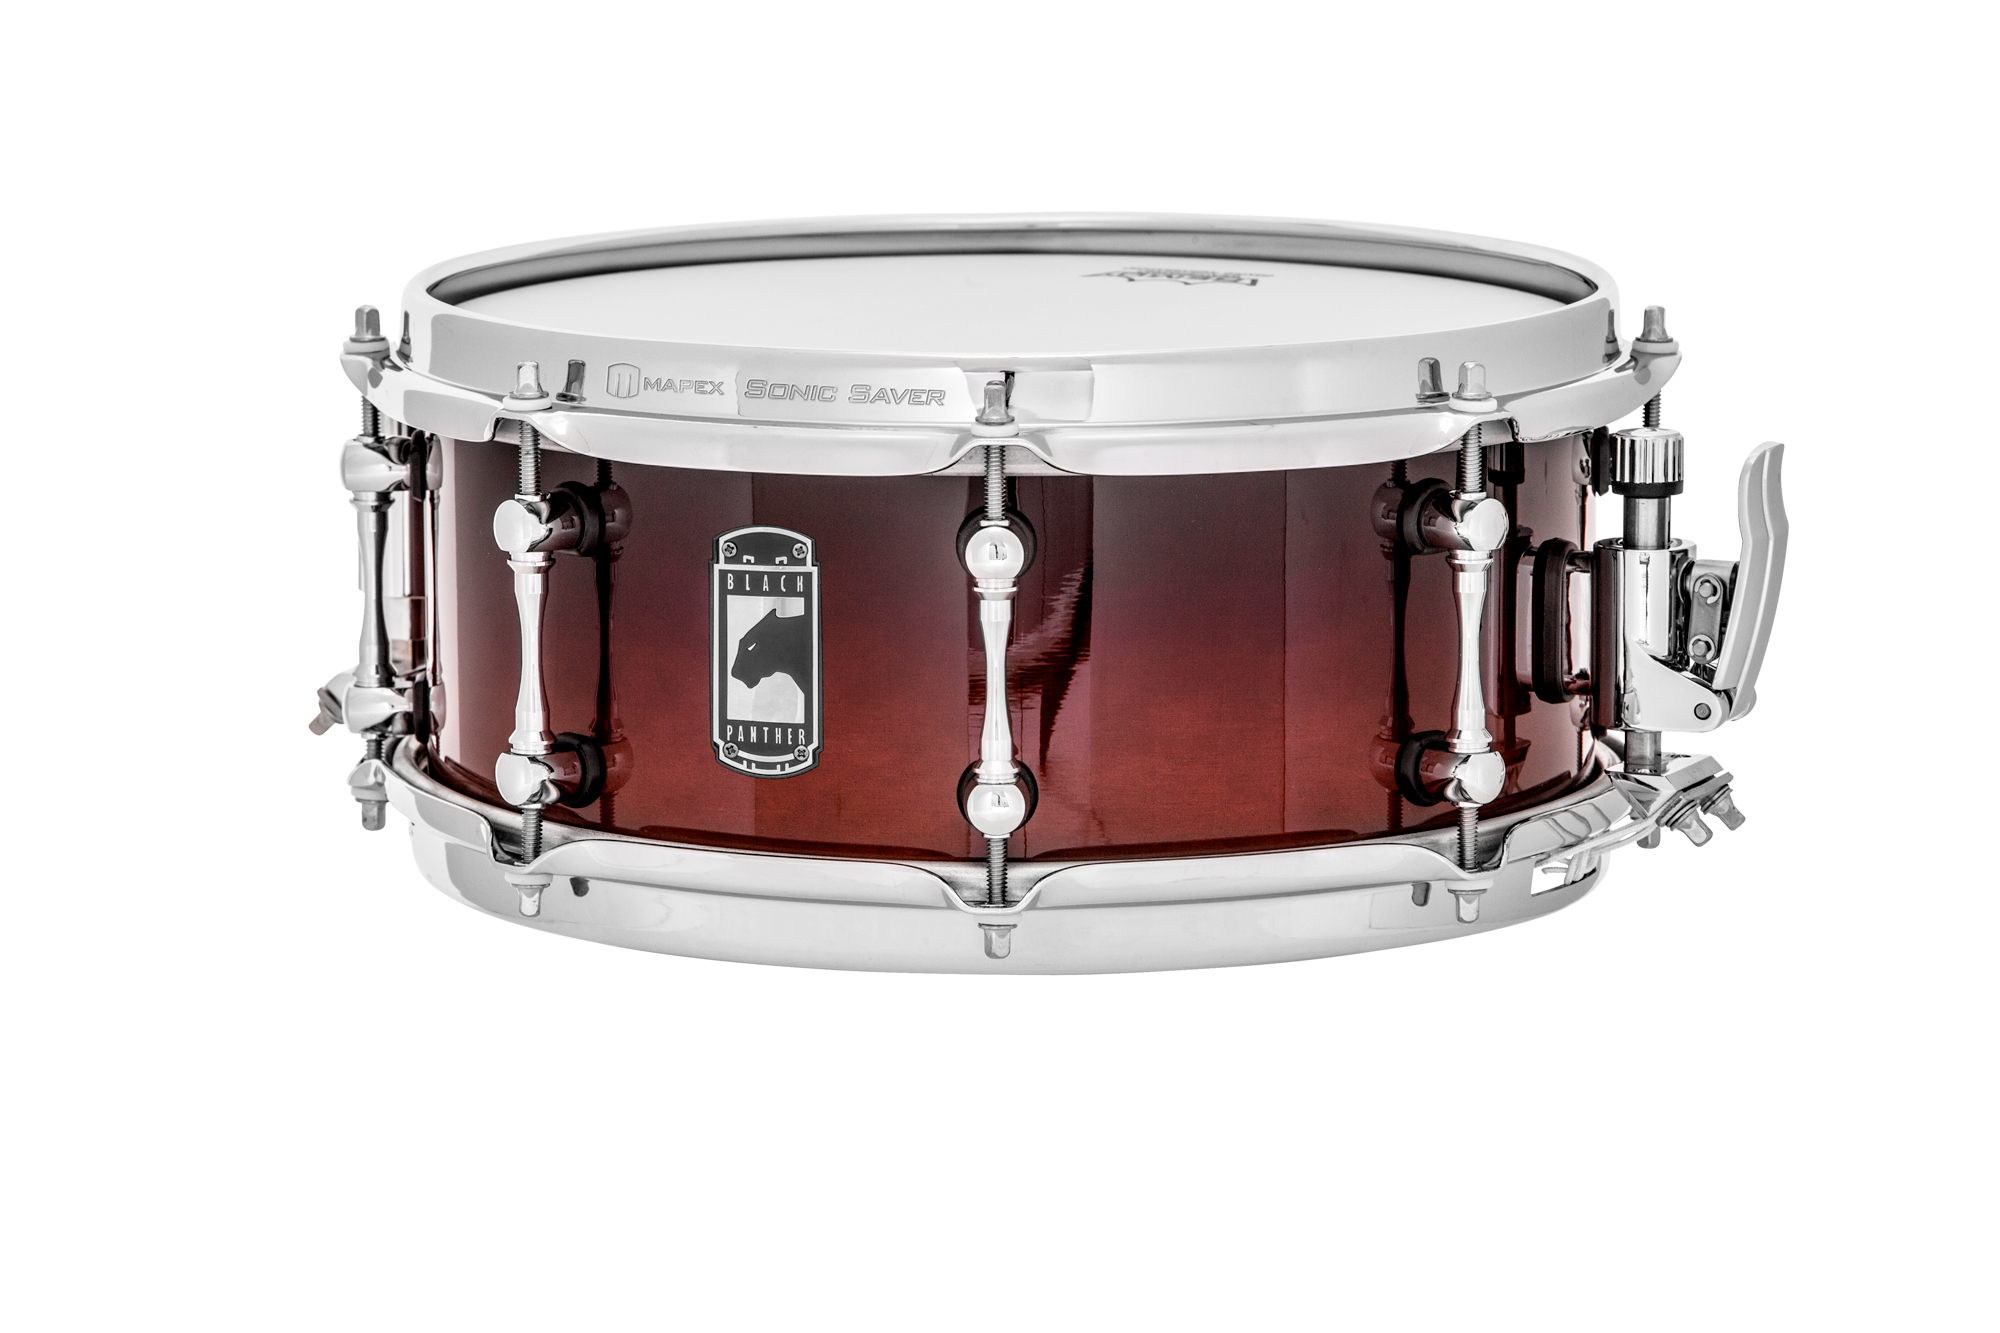 mapex black panther series phantom birch and walnut shell snare drum 5x12. Black Bedroom Furniture Sets. Home Design Ideas